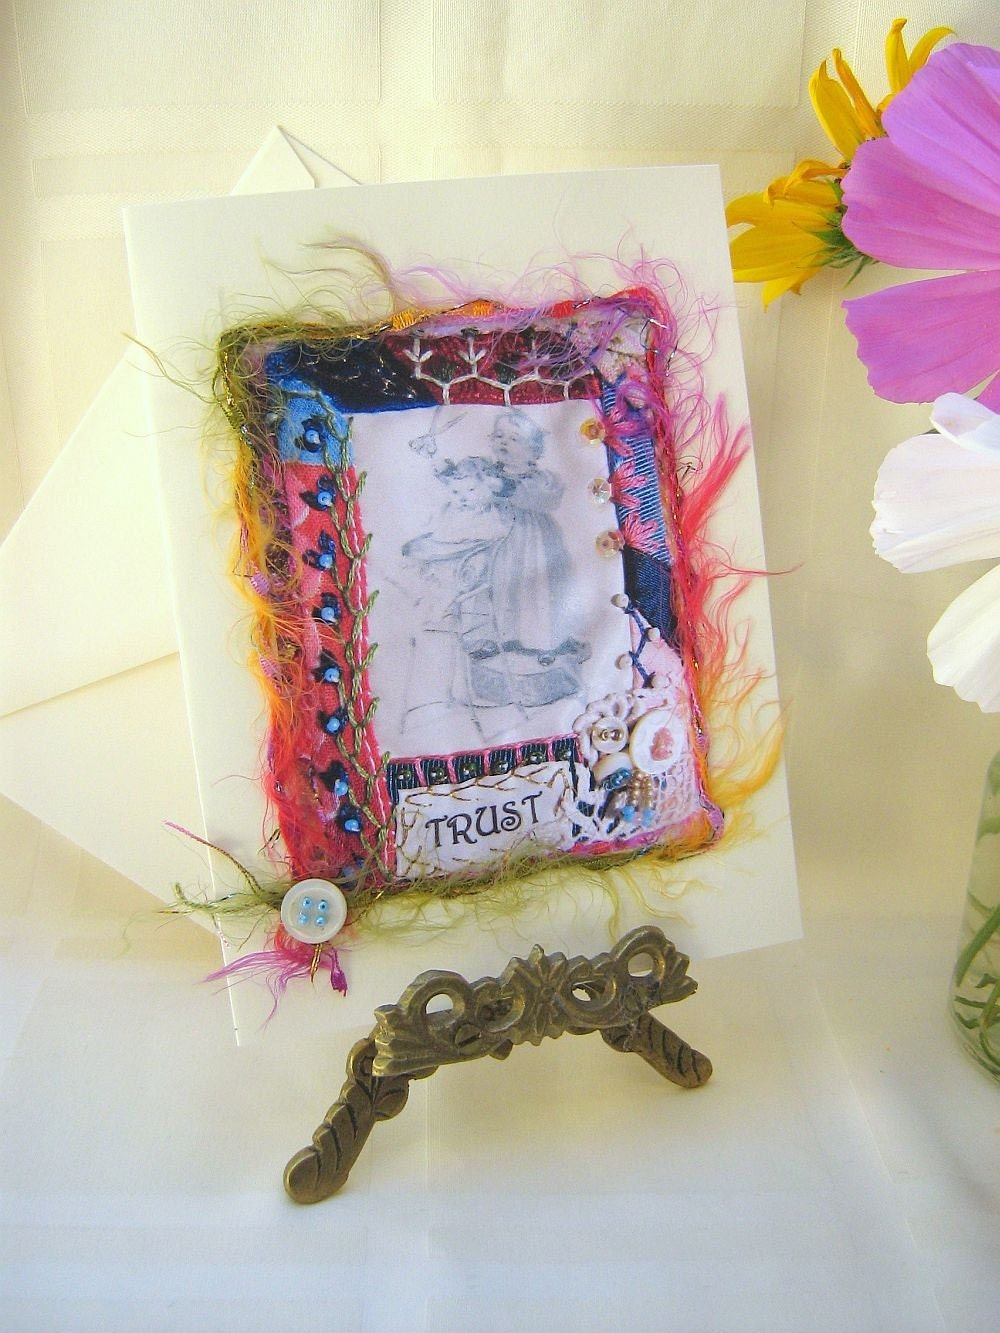 Greeting Card, Art Quilt Print, Mixed Media - Trust